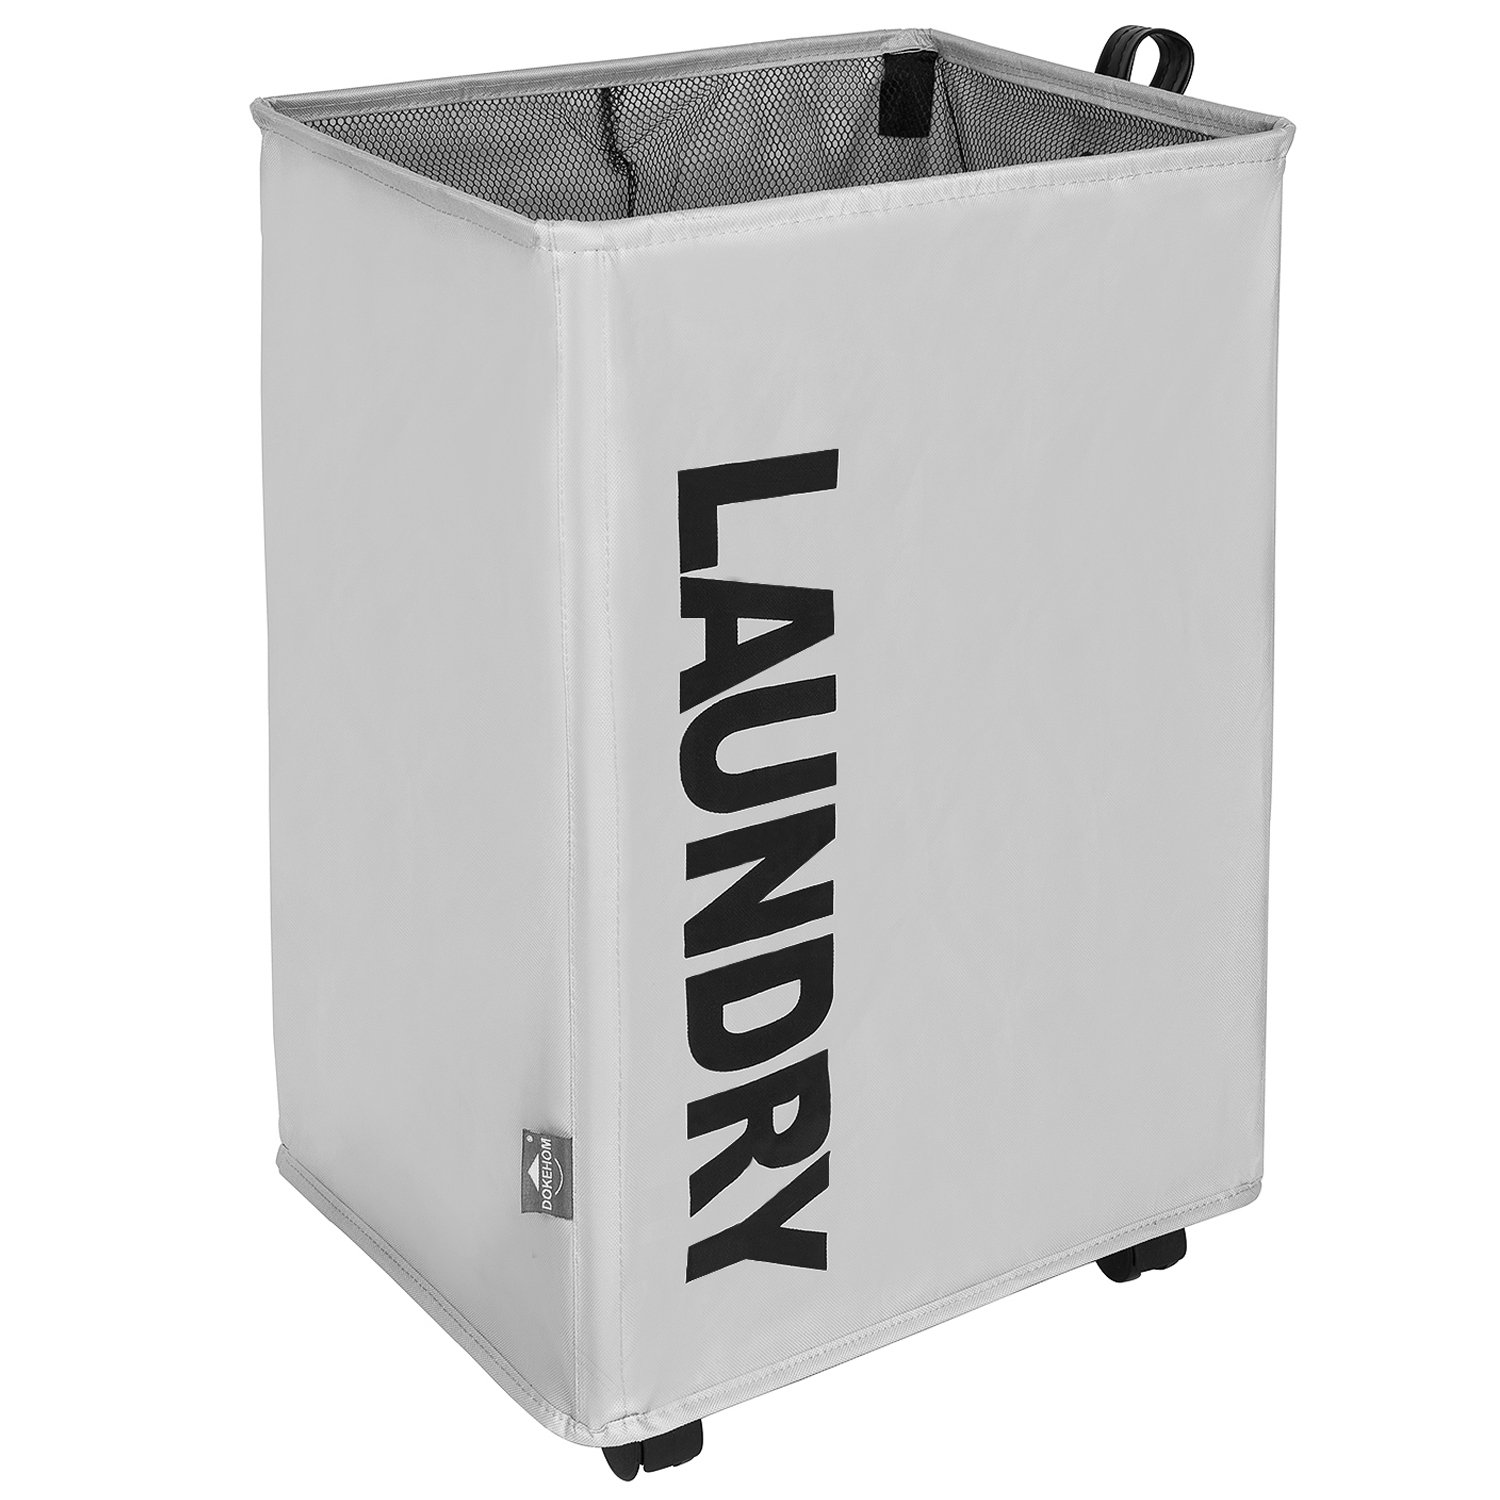 DOKEHOM DKA0210BKL X-Large Laundry Basket with Lather Handle and Wheel (3 Colors, M and L), Collapsible Fabric Laundry Hamper, Foldable Clothes Organizer, Folding Washing Bin (Black, L) IMOTECH TECHNOLOGY